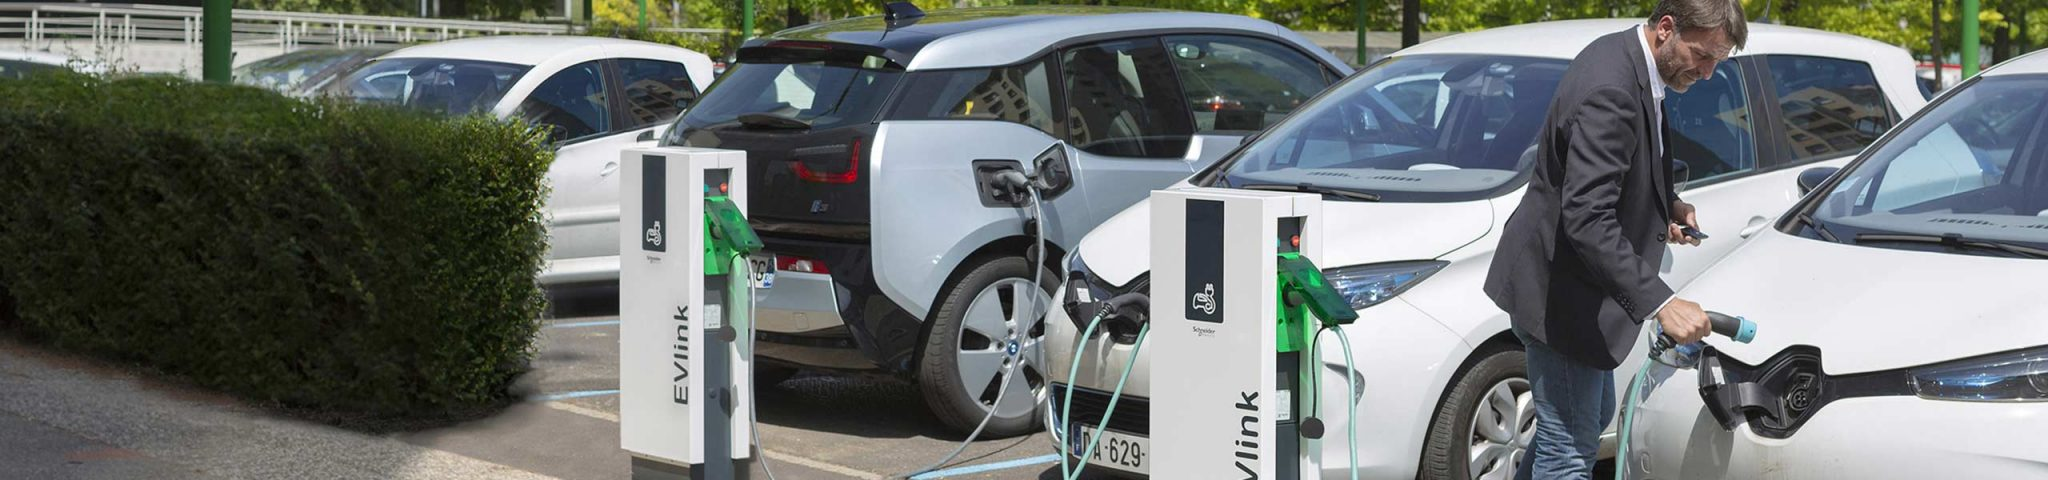 EVlink Wallbox Electric CarCharger